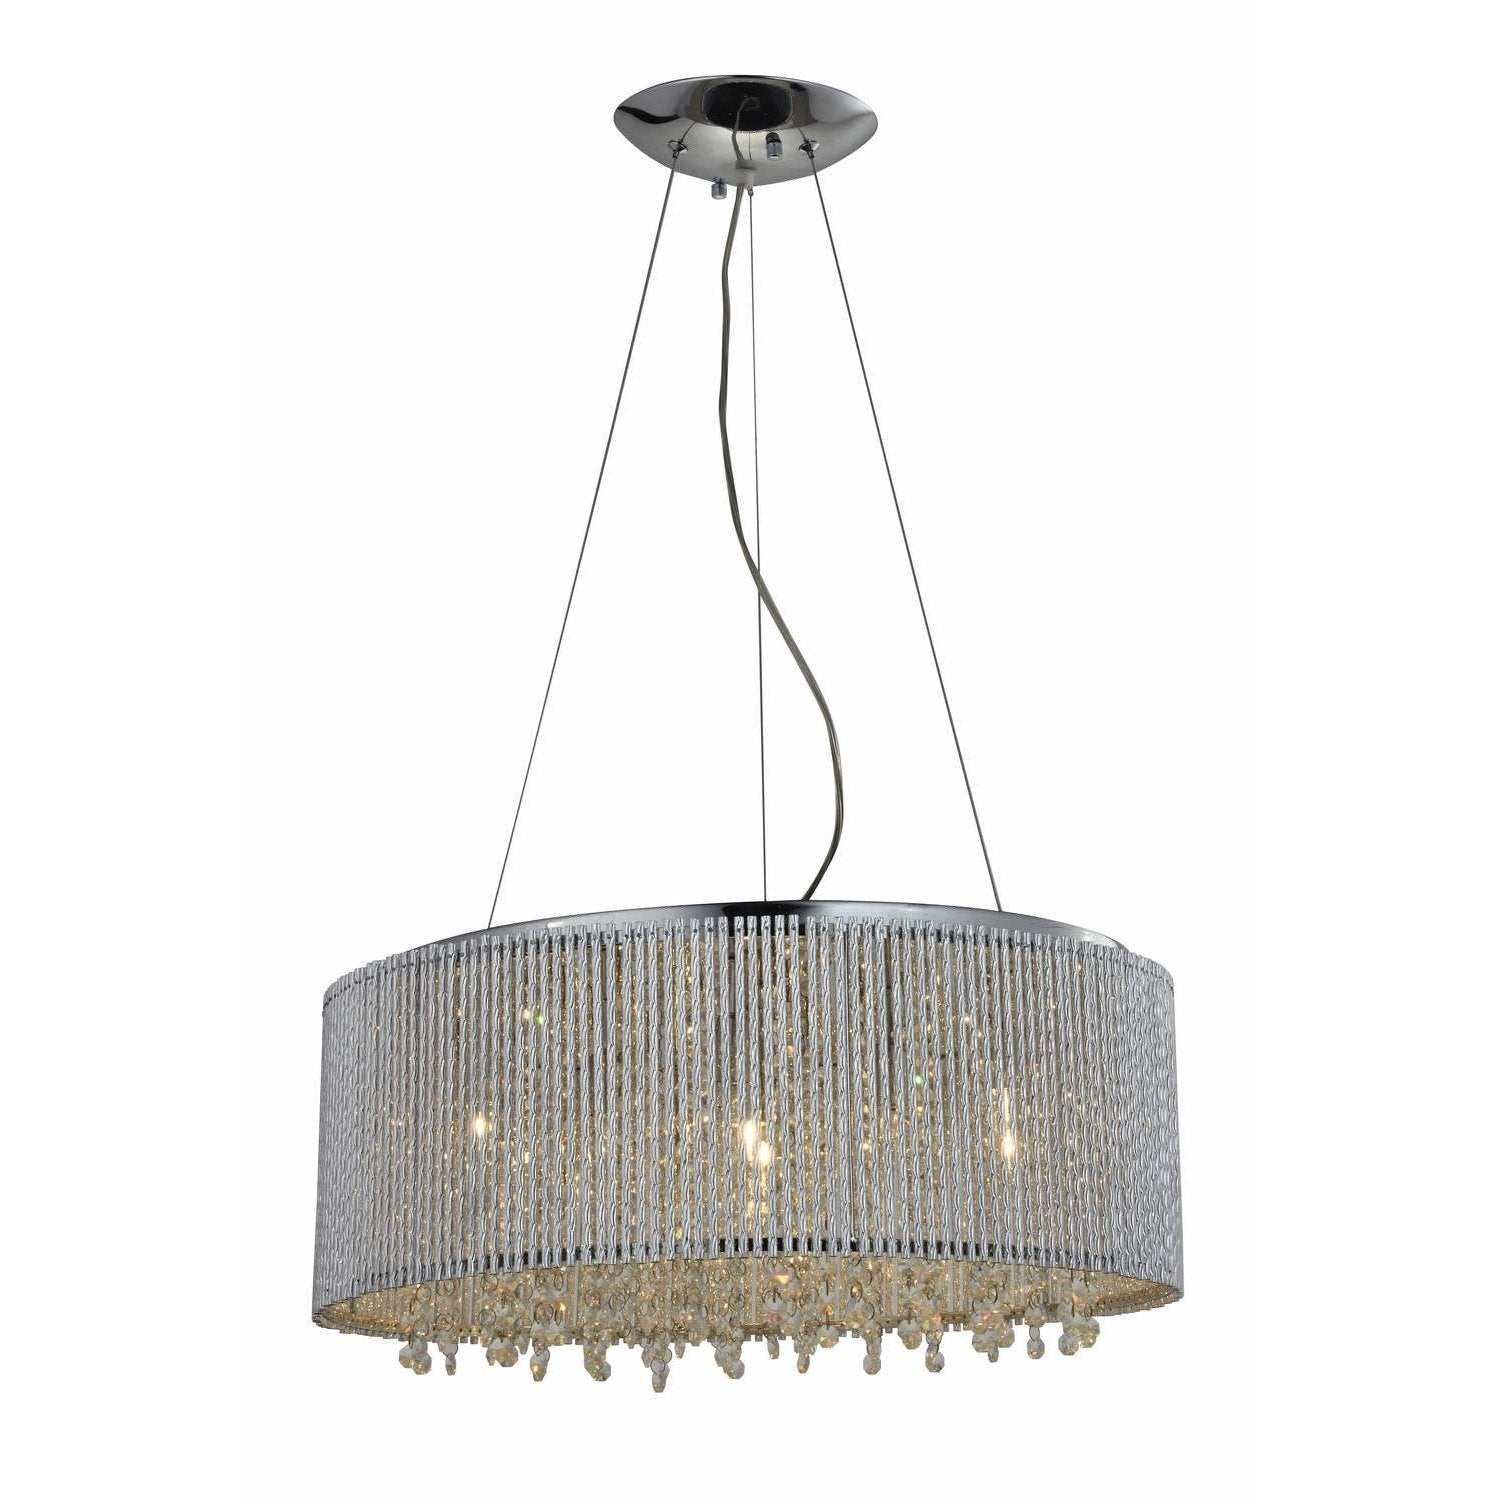 Bromi Design Chandeliers Chrome / Metal, Crystals Crystalline Round Modern Crystals Chandelier By Bromi Design BCP1113-10